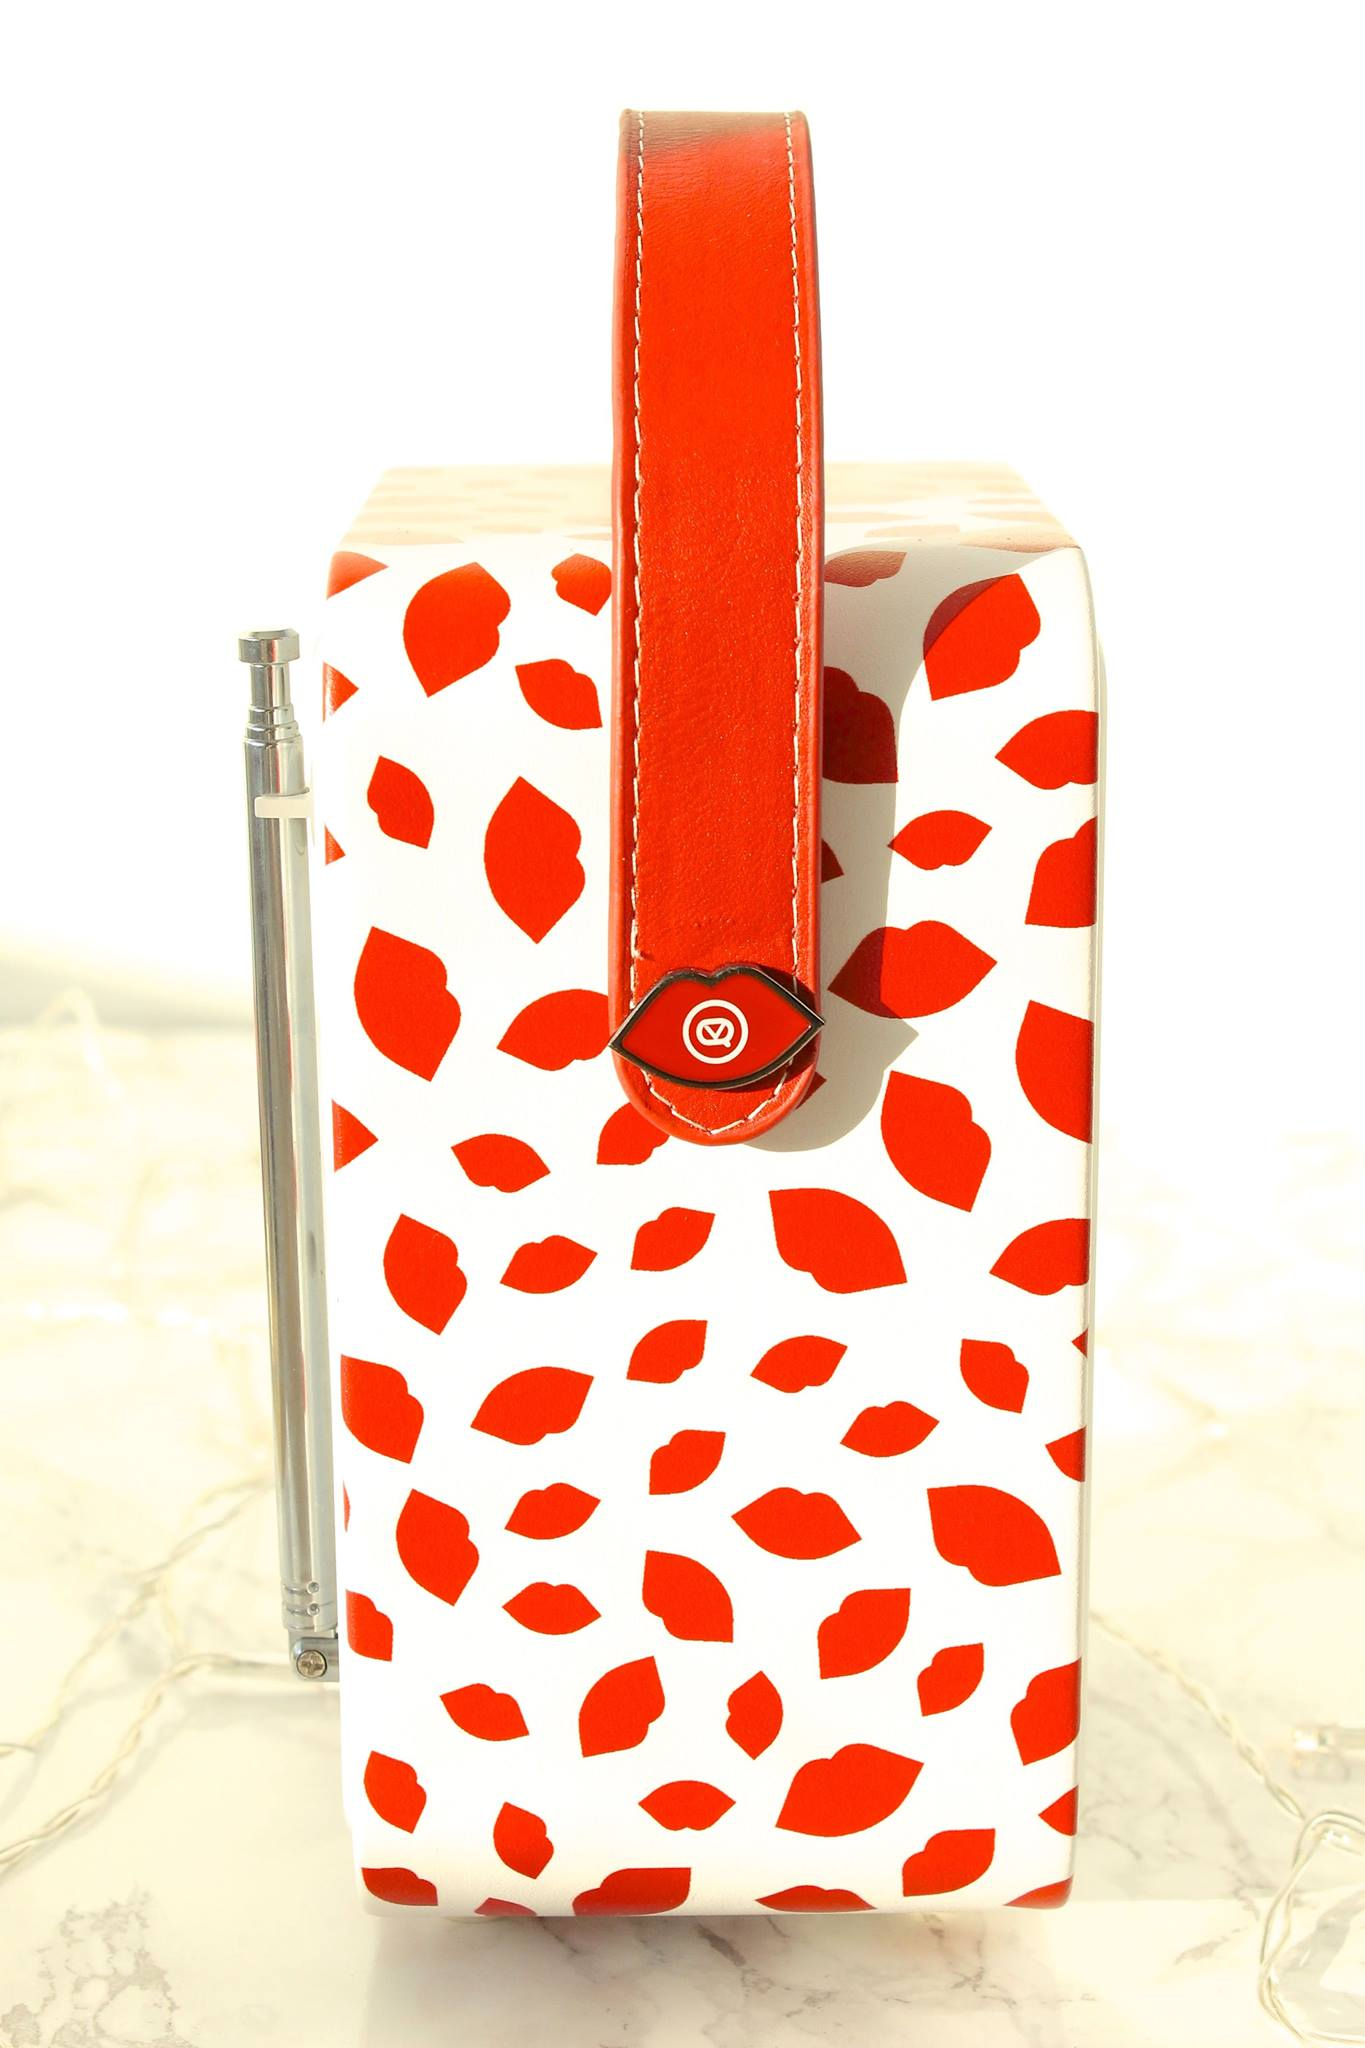 LULU GUINNESS PRINT RETRO MINI RADIO BLOG REVIEW